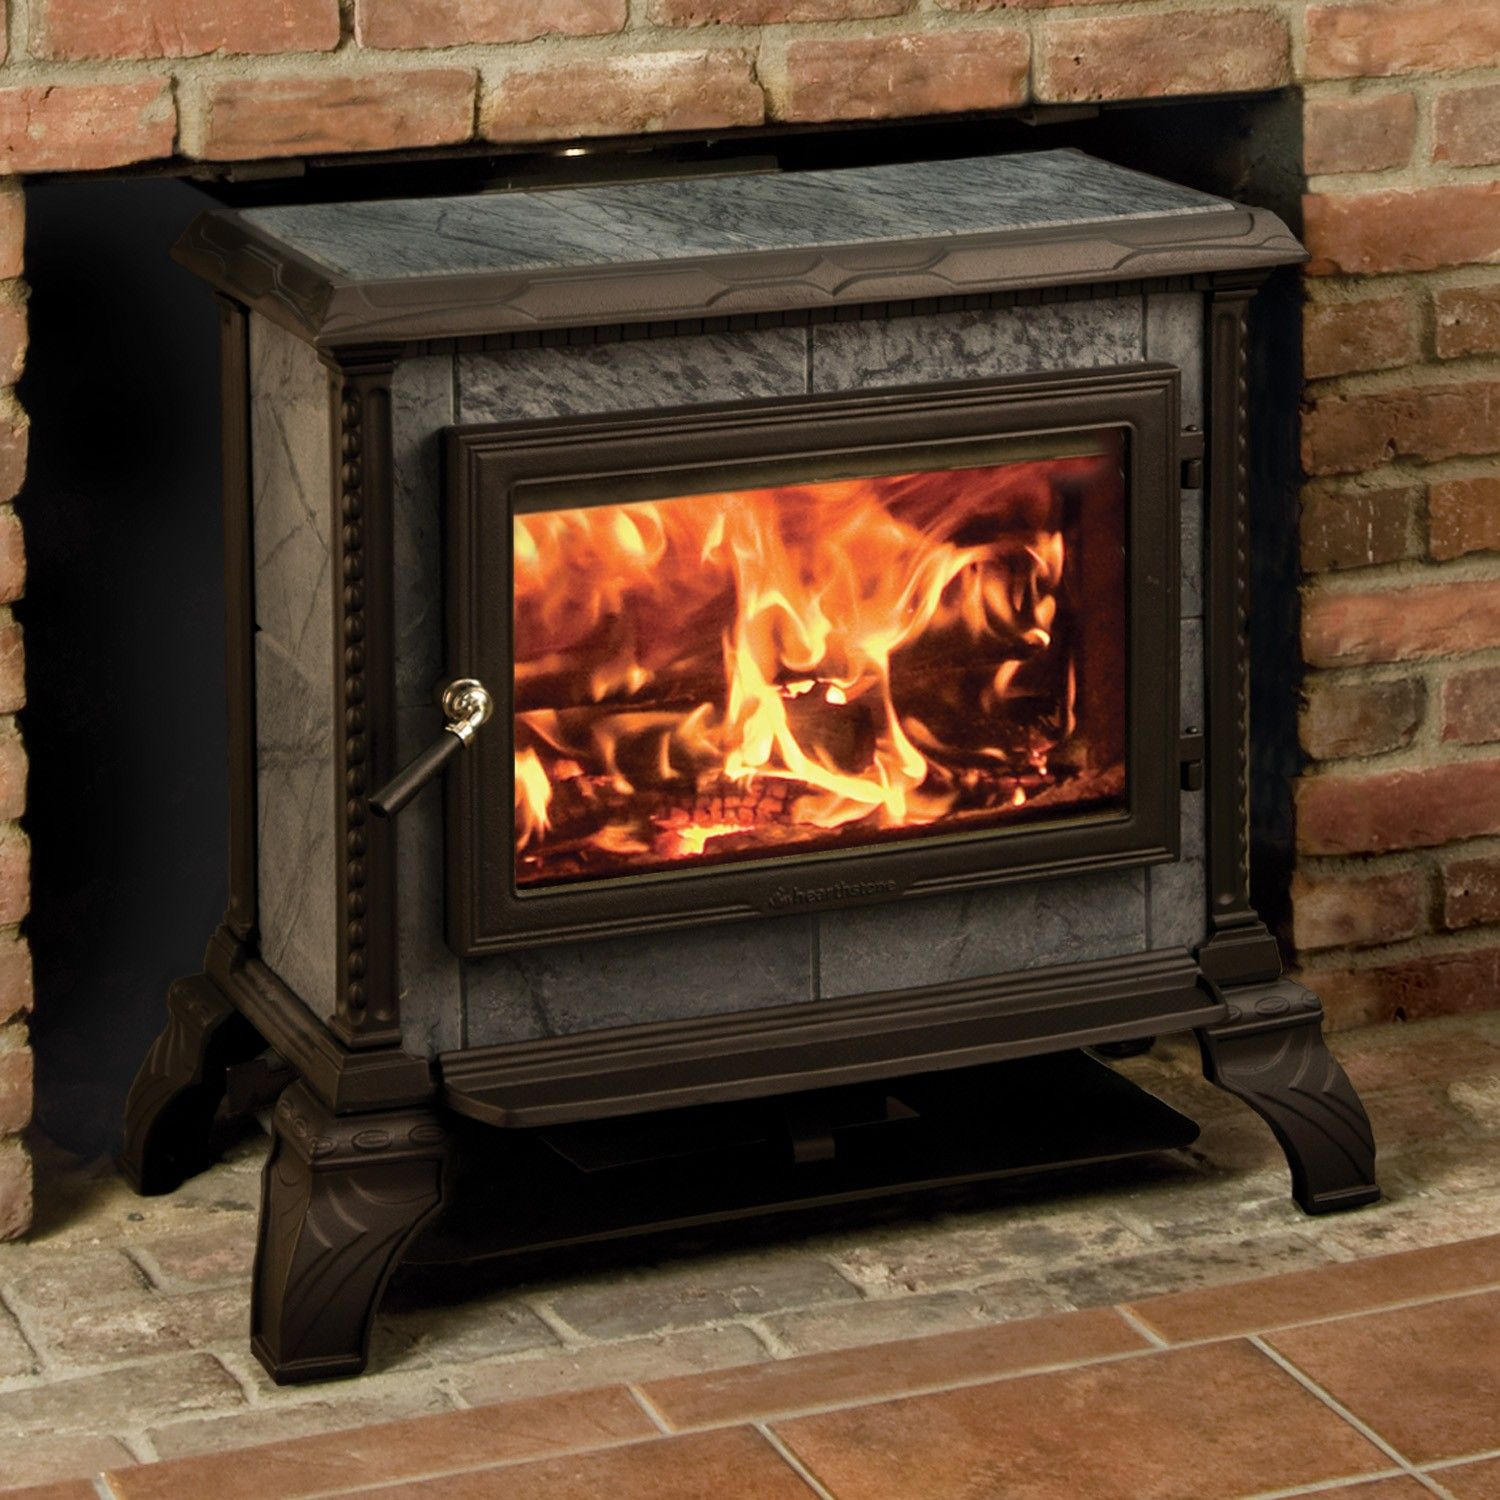 Homestead Freestanding wood stove in Matte Black, by Hearthstone. Heats up  to 1800 sq - Wood Burning See-Through Freestanding Stove. Features: *See